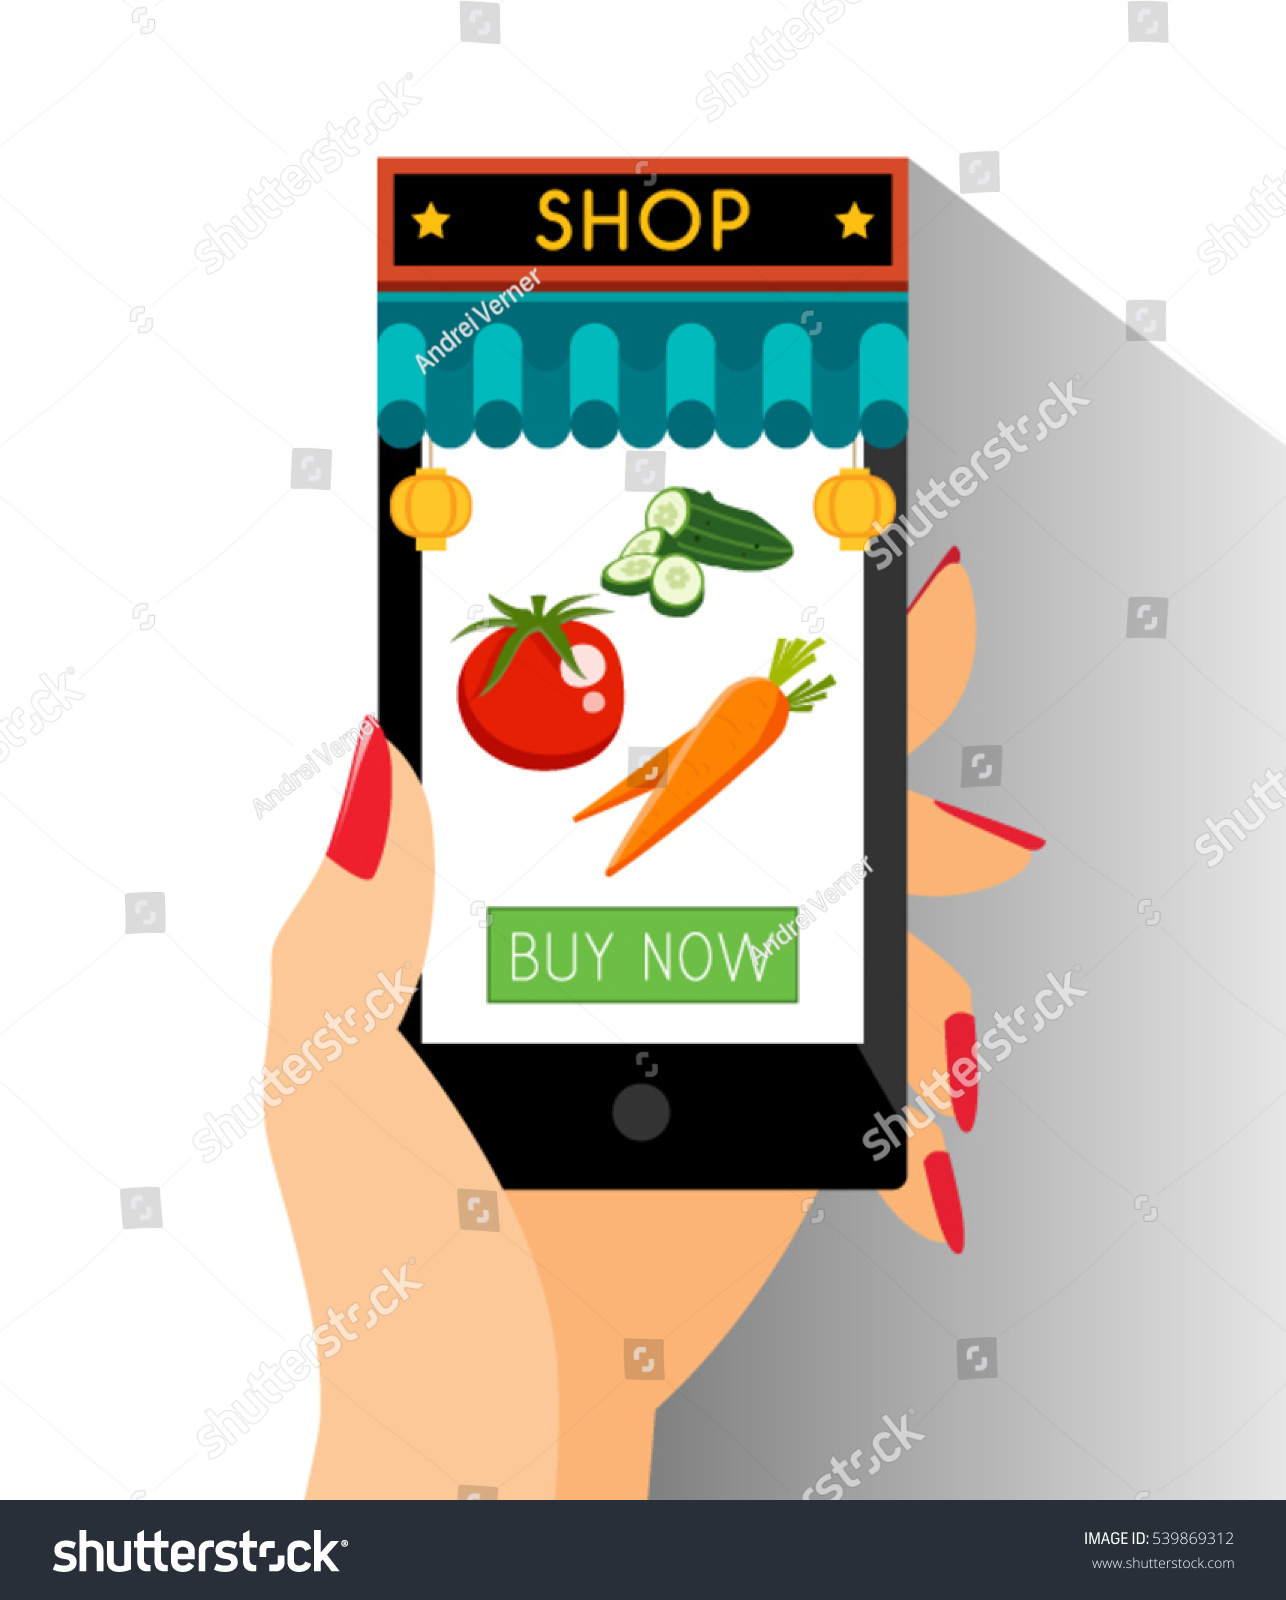 Ecommerce Chinese Shop Online Shopping Web Stock Vector 539869312 ...